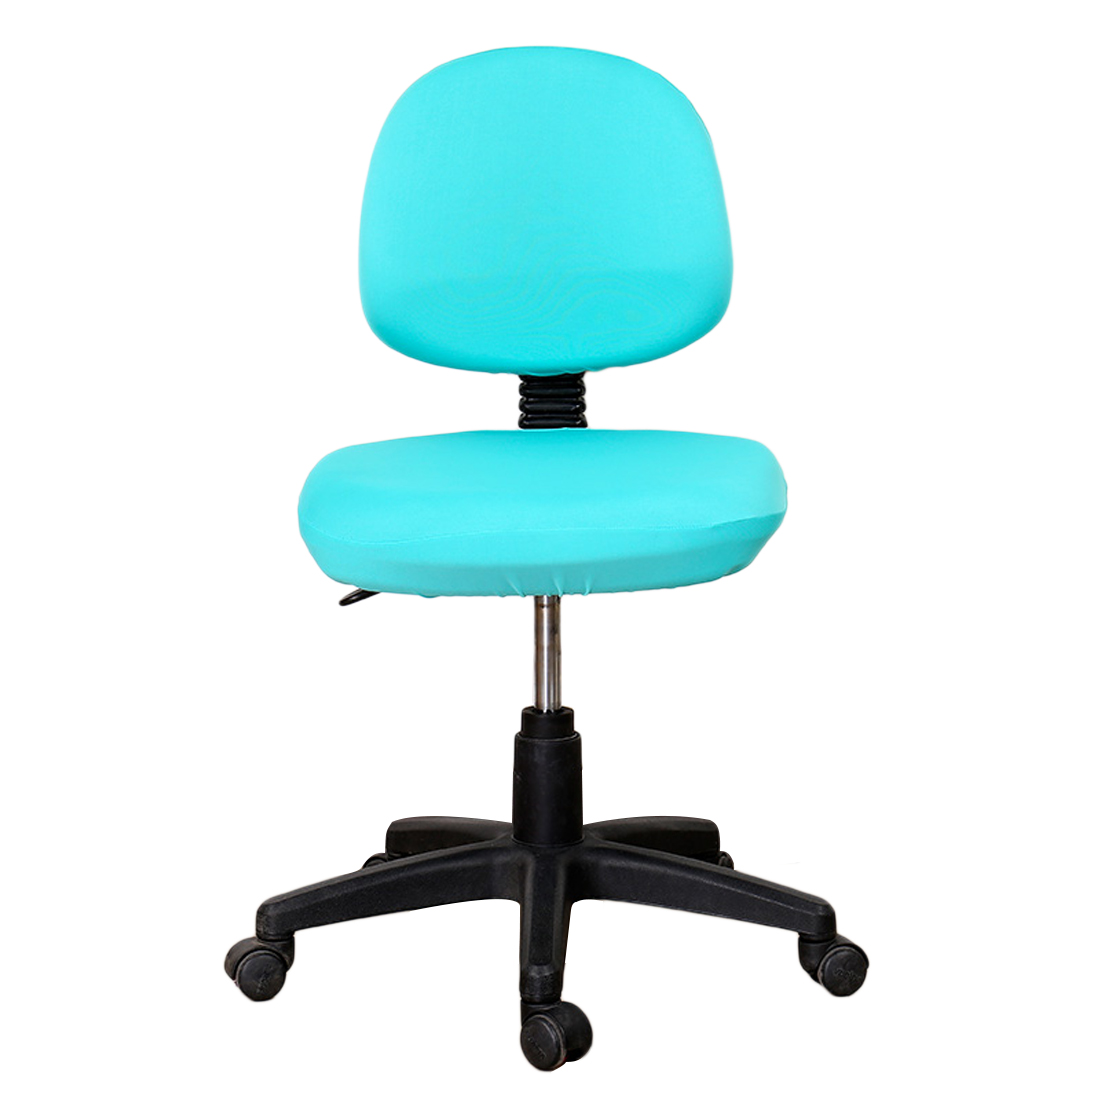 Elastic Chair Covers Made with Polyester Material For Office and Computer Chair in Universal Size 13